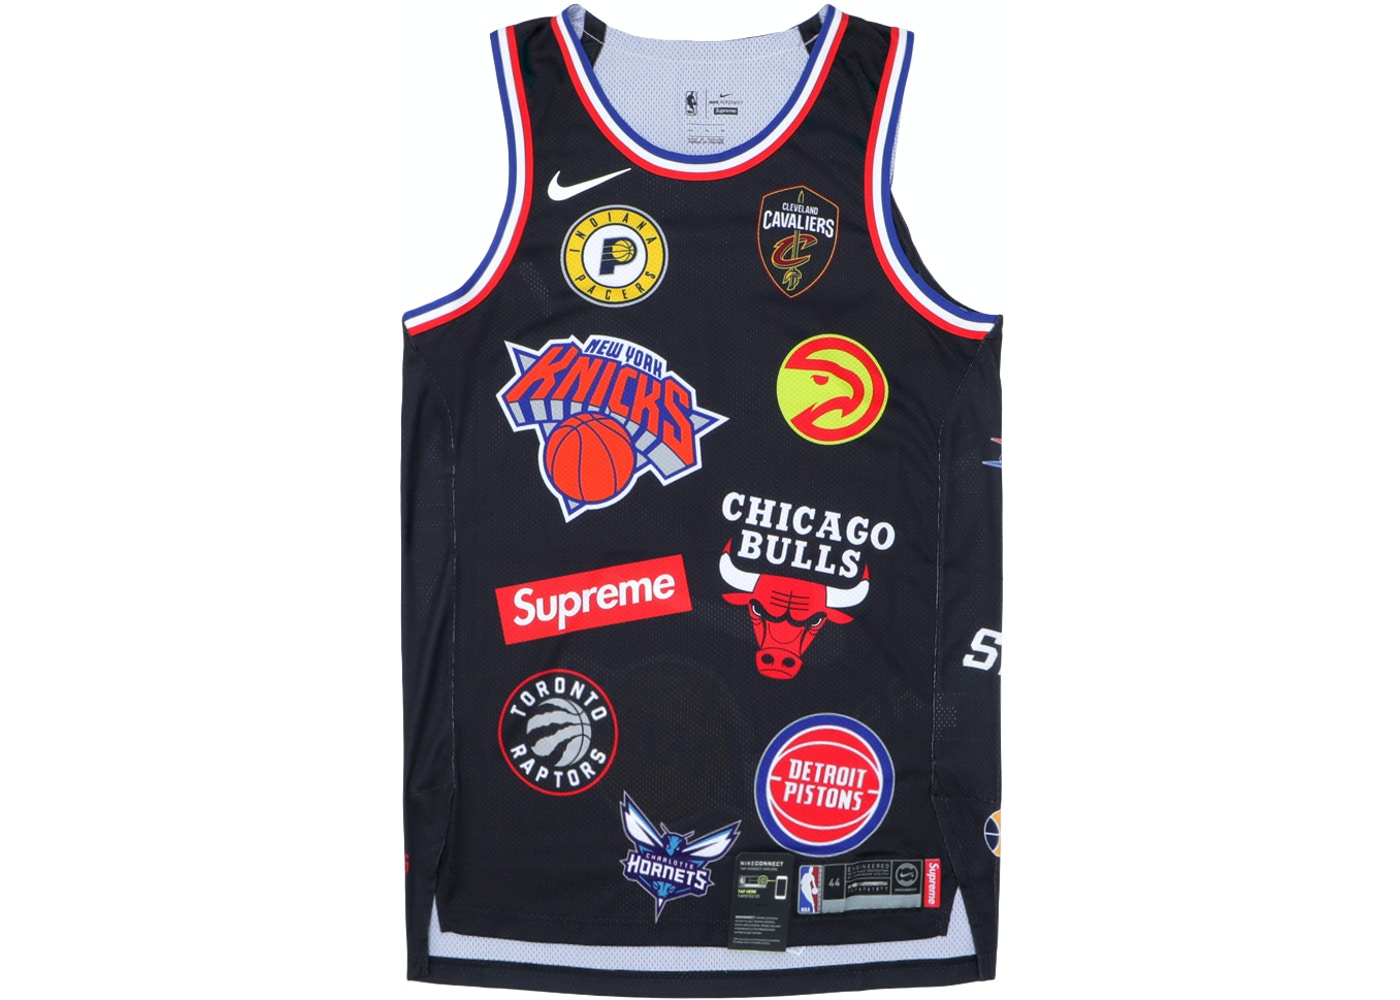 038ced0ac Supreme Nike NBA Teams Authentic Jersey Black - SS18